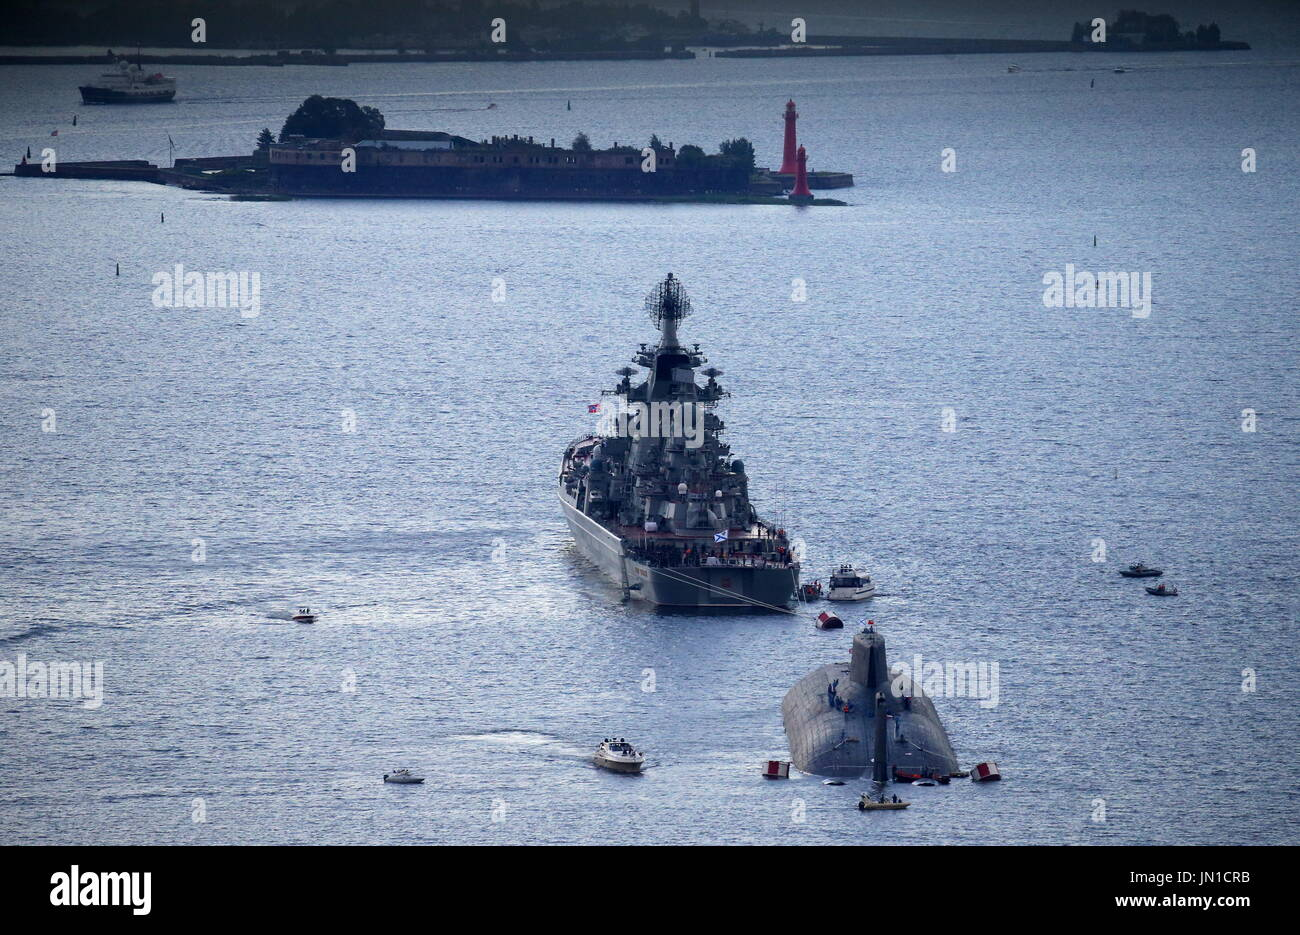 St Petersburg, Russia. 28th July, 2017. Russian Navy's TK-208 Dmitry Donskoy nuclear submarine and Pyotr Velikiy battlecruiser arrive at the Leningrad Naval Base of the Russian Baltic Fleet in the town of Kronstad on Kotlin Island to participate in the Main Navy Parade scheduled for July 30, 2017 to mark Russian Navy Day. Credit: Peter Kovalev/TASS/Alamy Live News - Stock Image